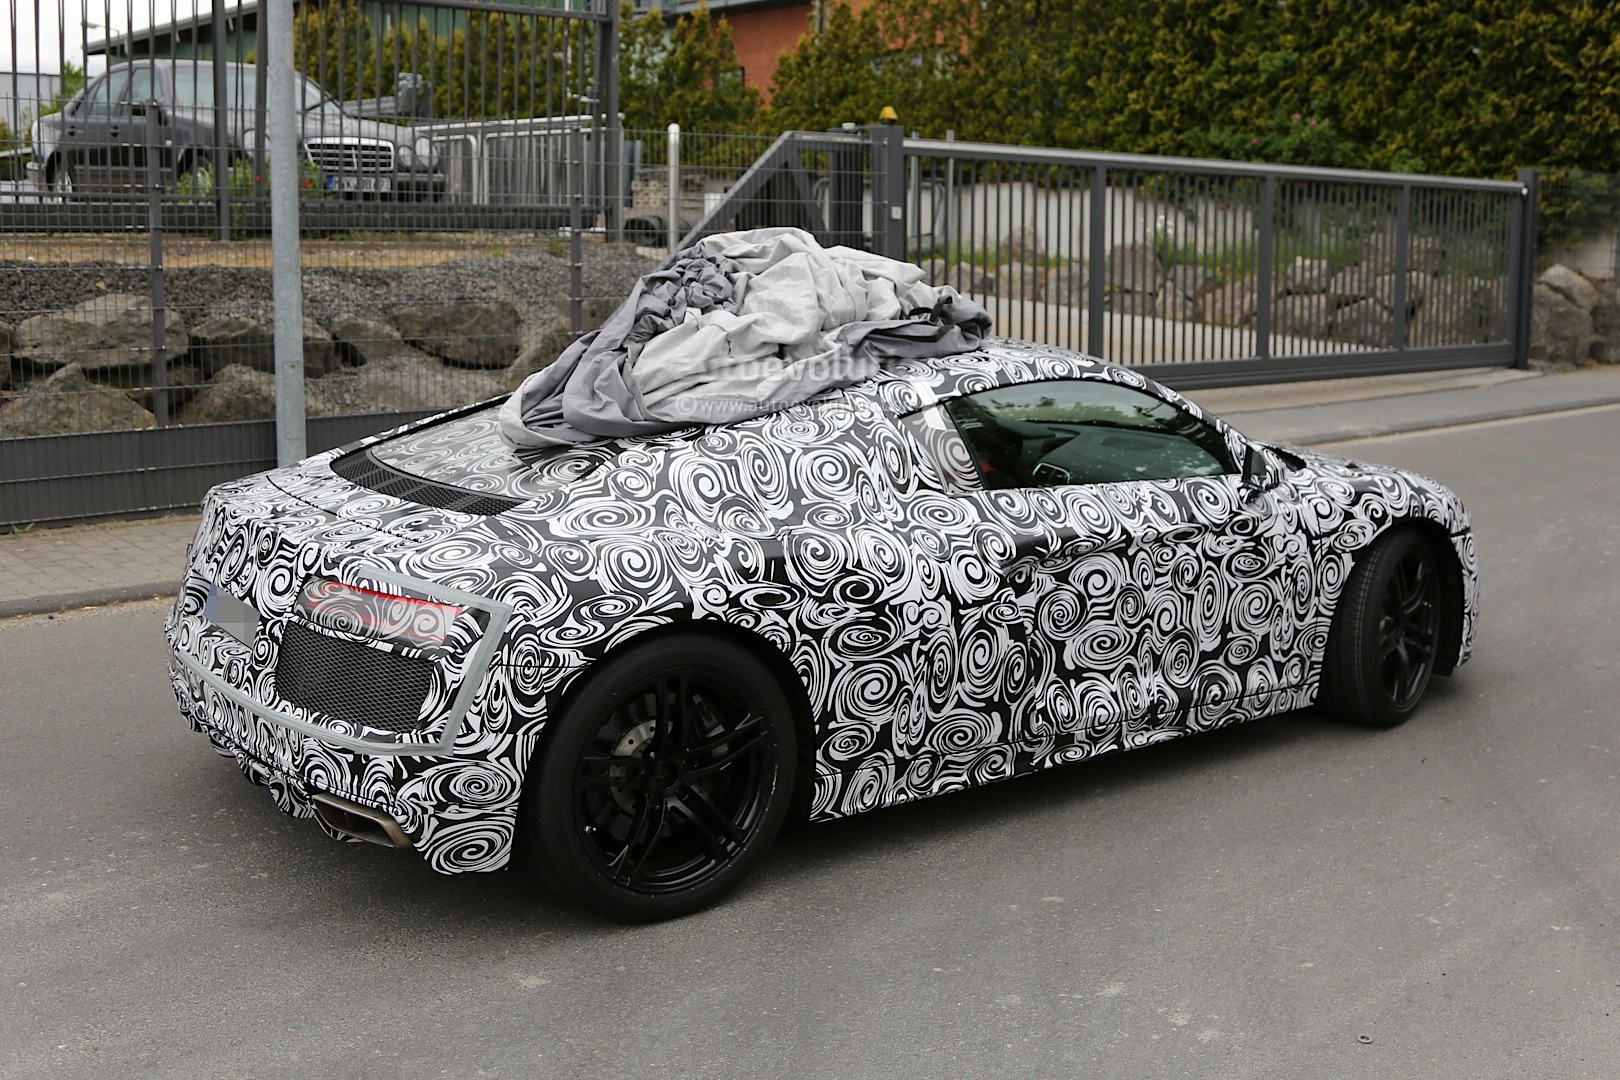 2015 - [Audi] R8 II / R8 II Spider - Page 2 2016-audi-r8-new-led-taillights-spied-in-detail_4